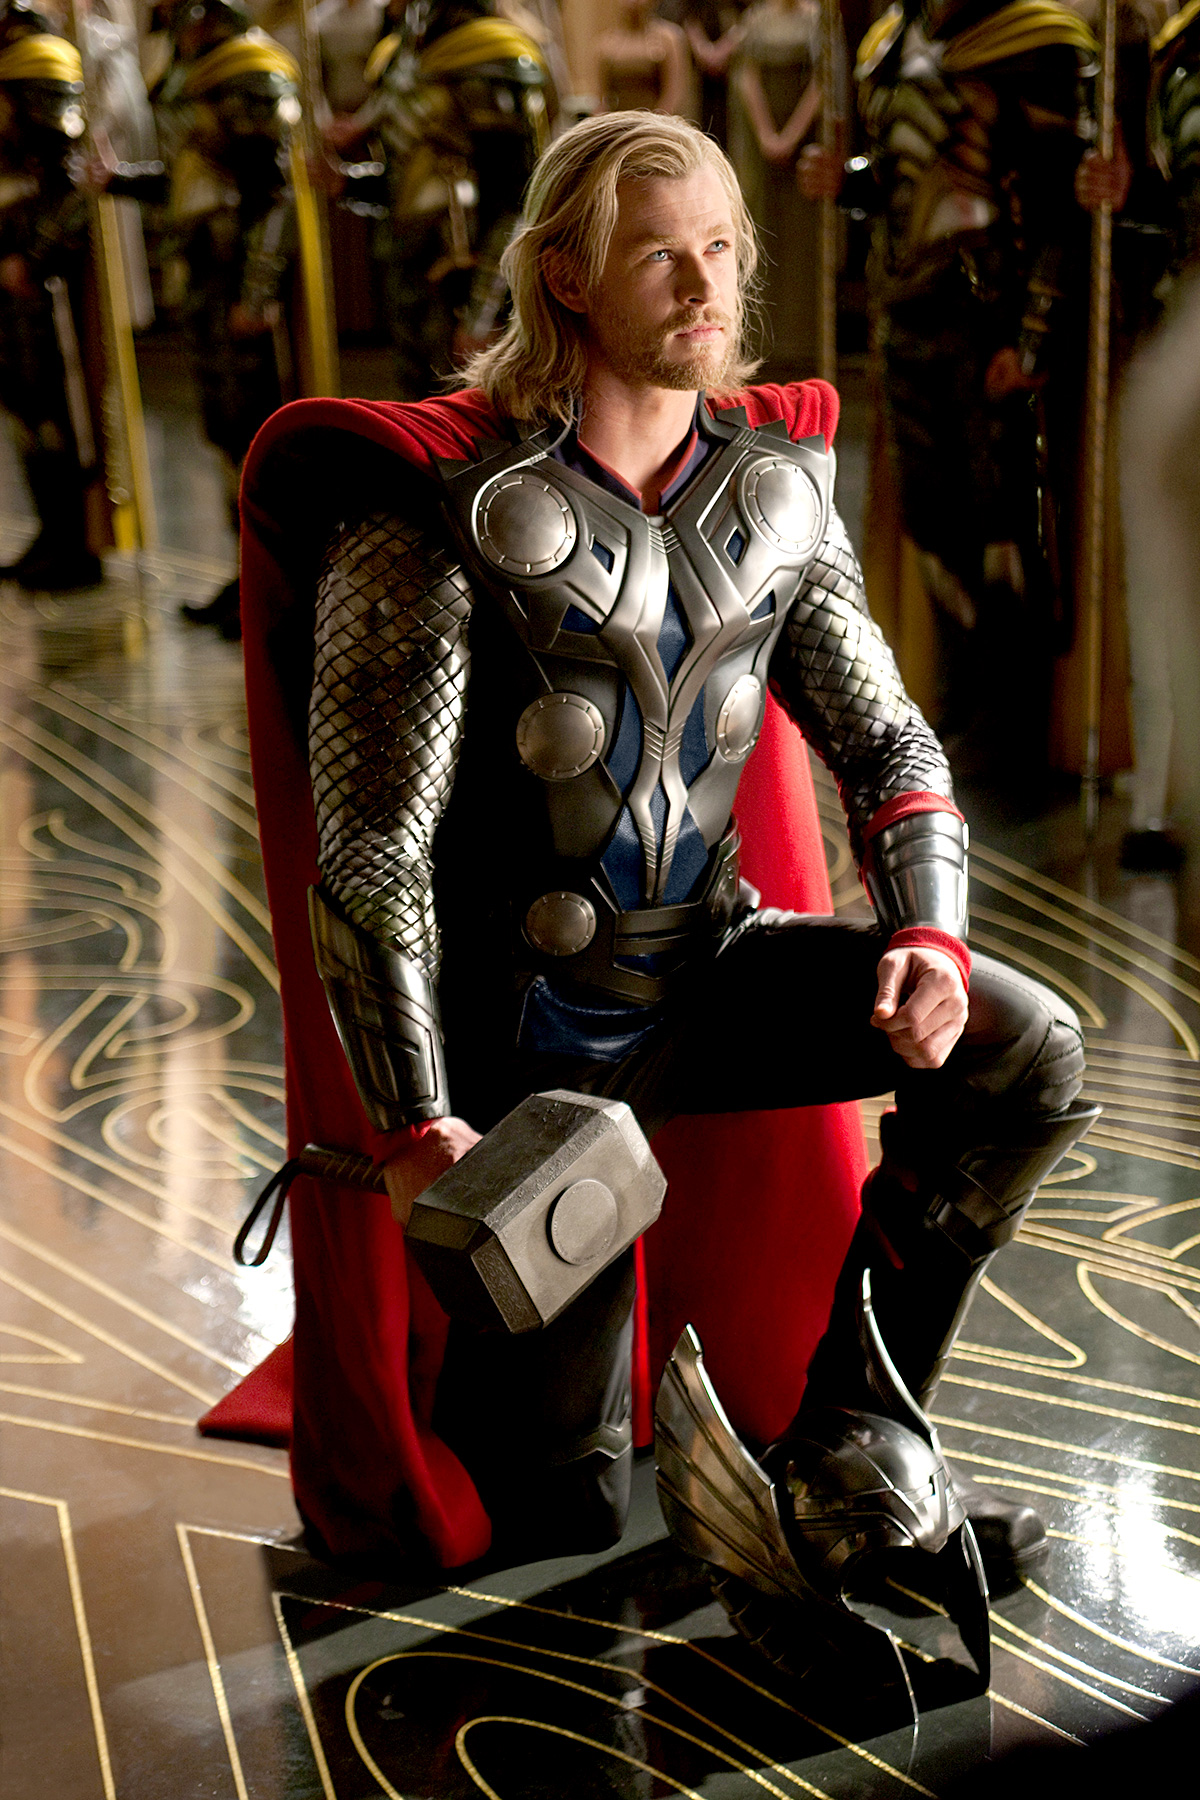 Star Trek actor Chris Hemsworth discovered his inner Norse warrior 2011's Thor, continuing as the superhero in 2012's The Avengers and 2013's Thor: The Dark World.